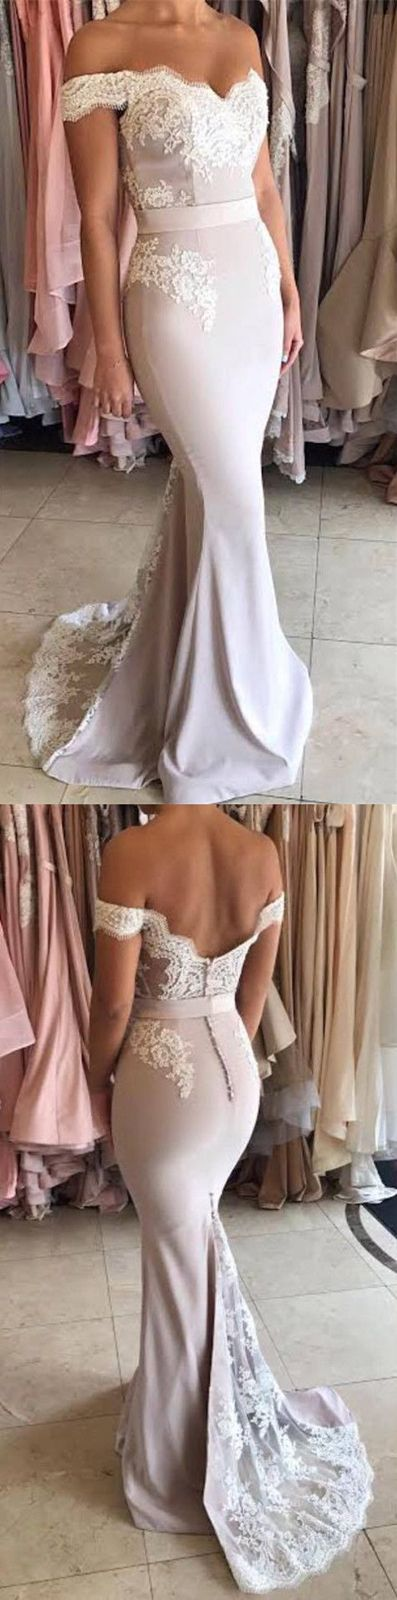 off the shoulder bridesmaid dresses, mermaid long prom dresses with appliques, elegant backless party dresses